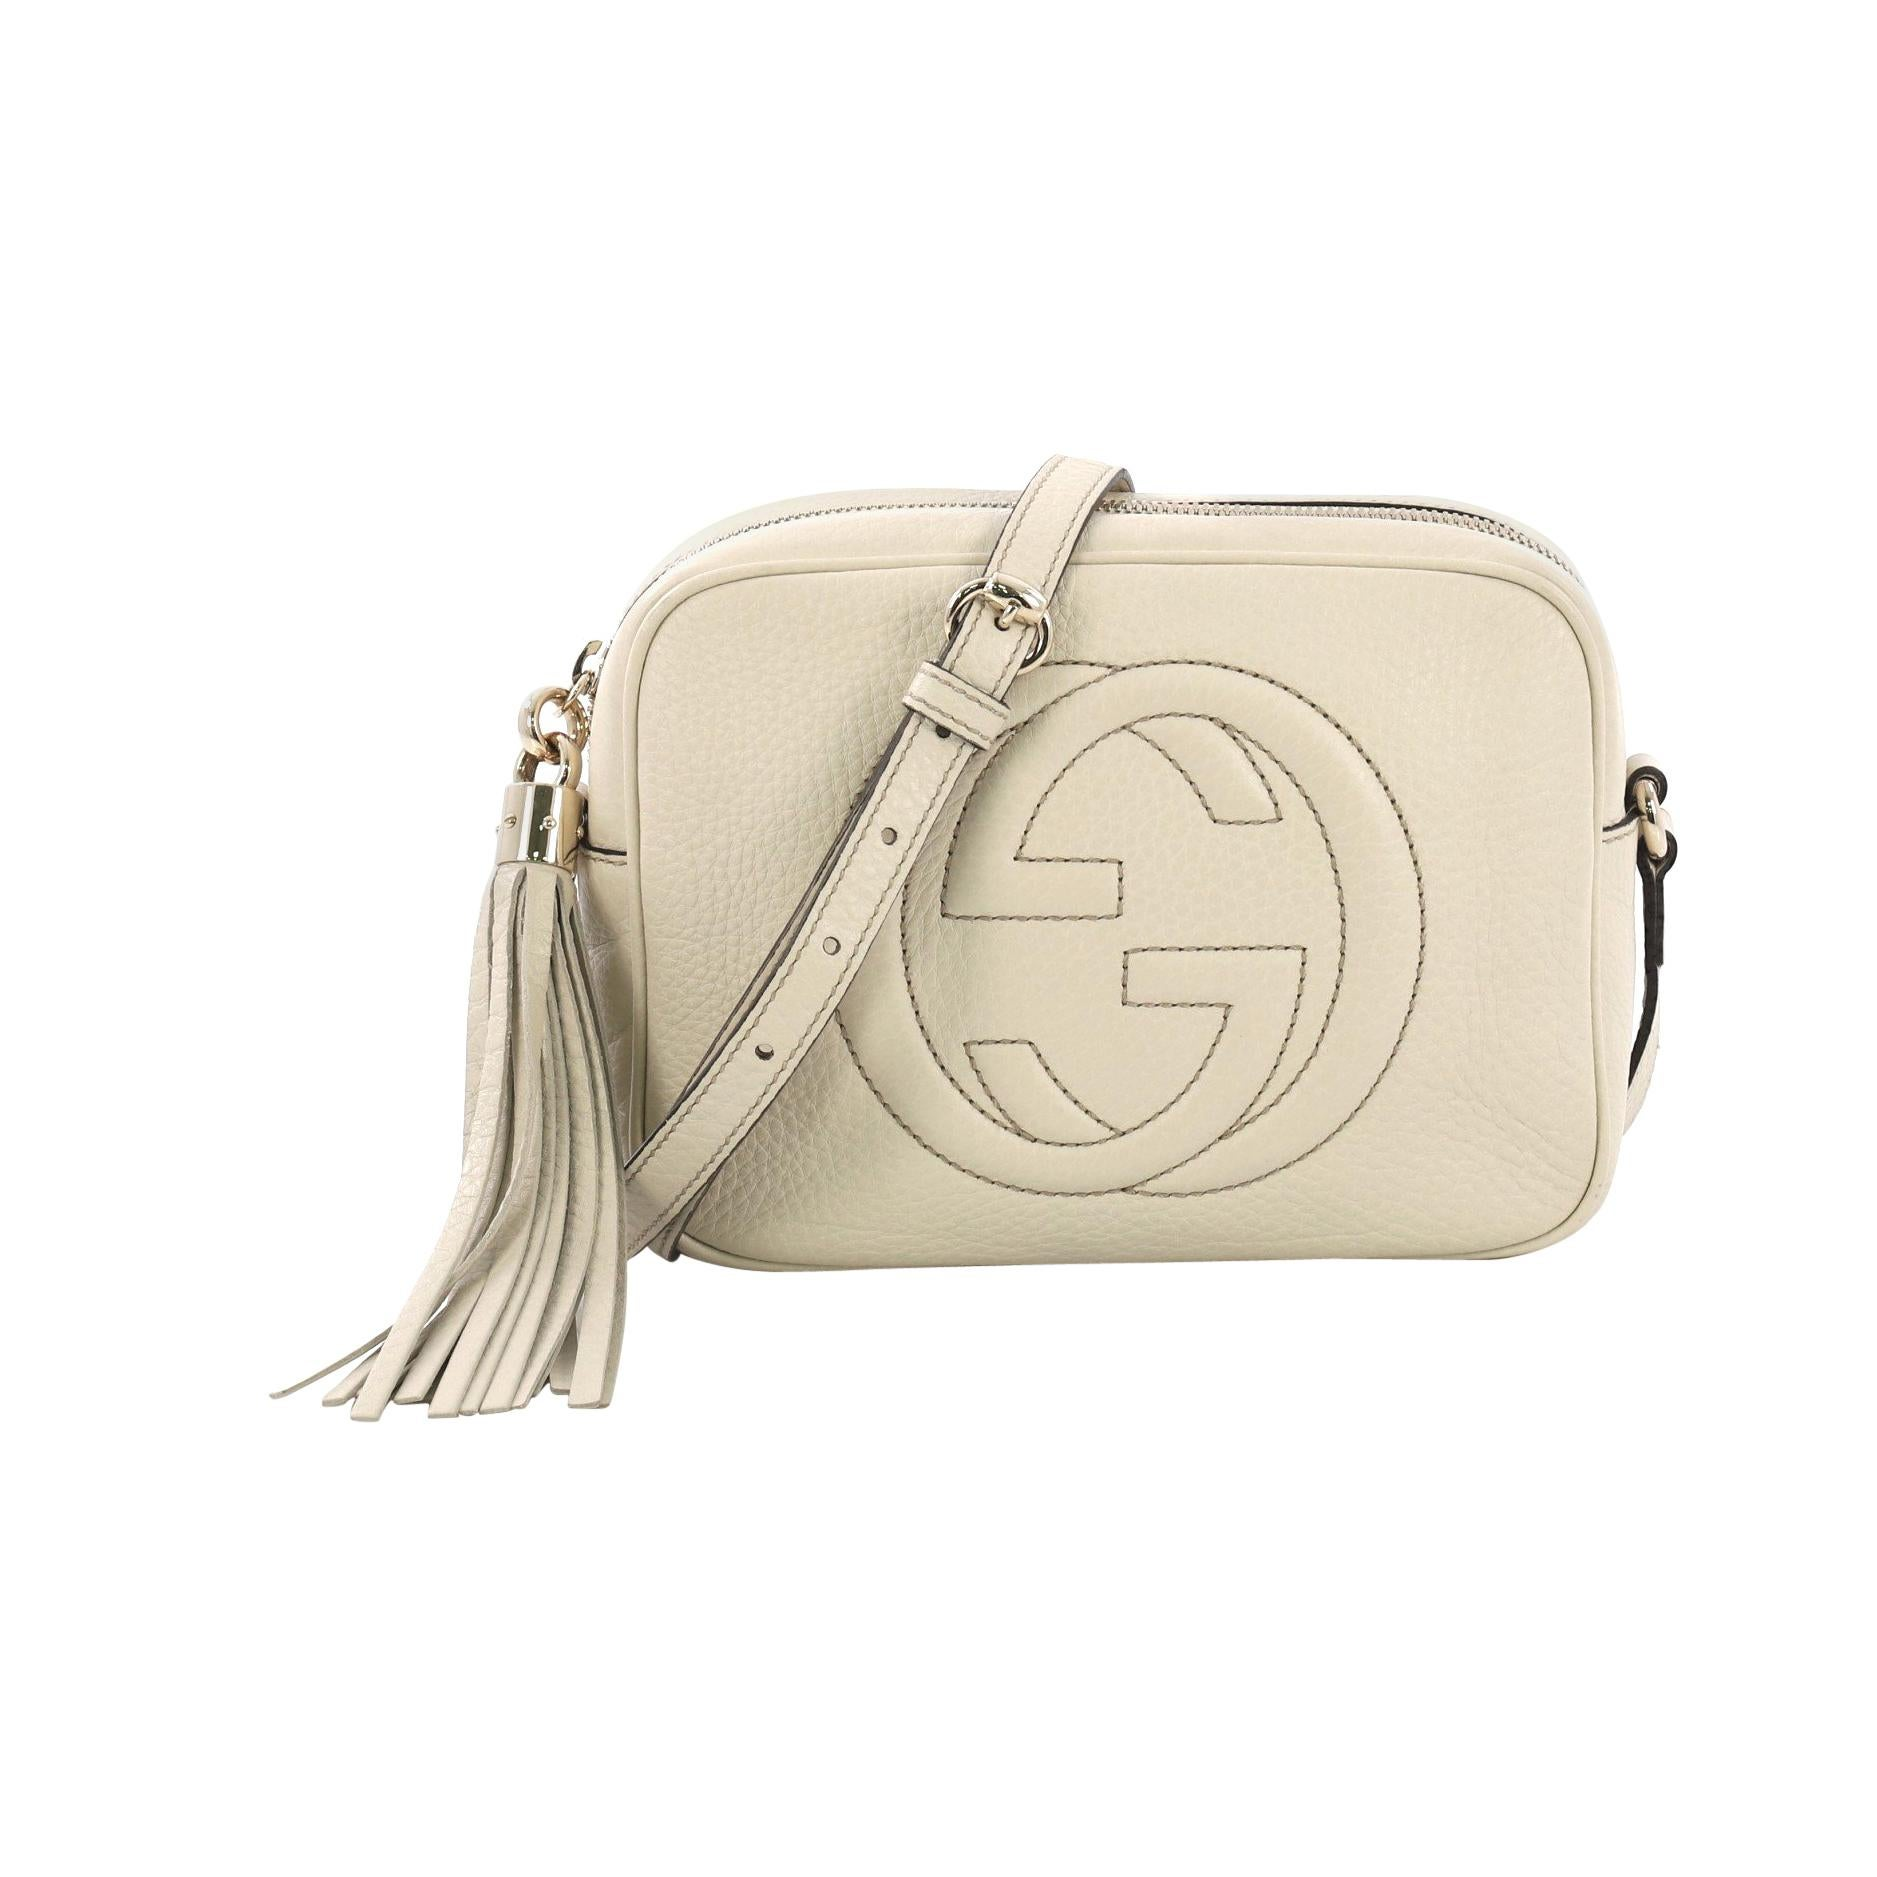 4a31116368 Gucci Soho Disco Crossbody Bag Leather Small at 1stdibs